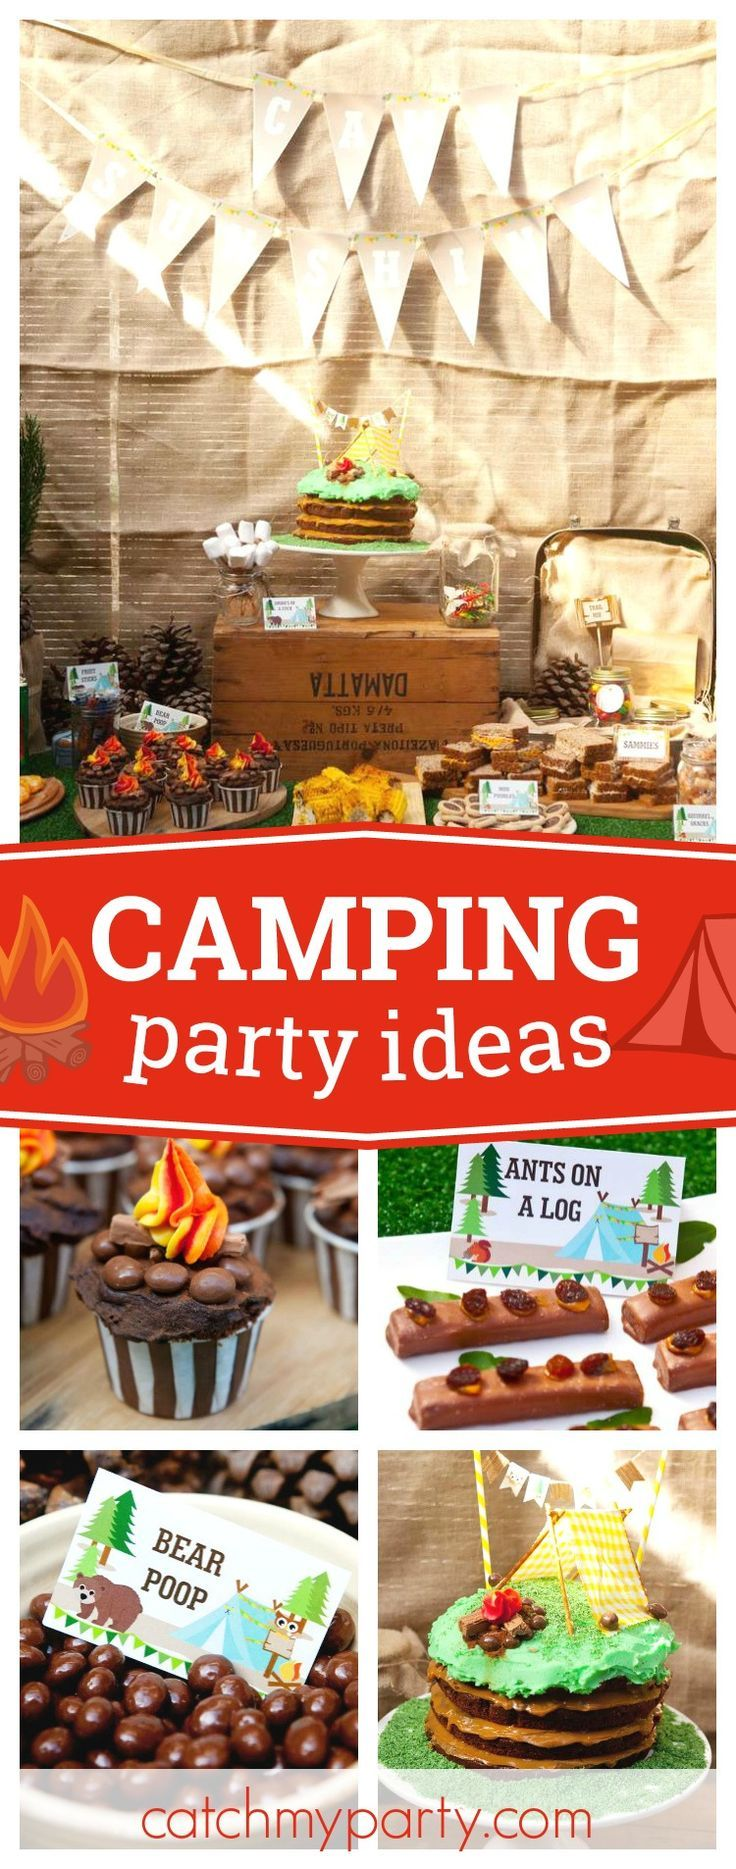 Check out this fun Summer Camp Sunshine Camping Party! The birthday cake is so cool!!! See more party ideas and share yours at CatchMyParty.com